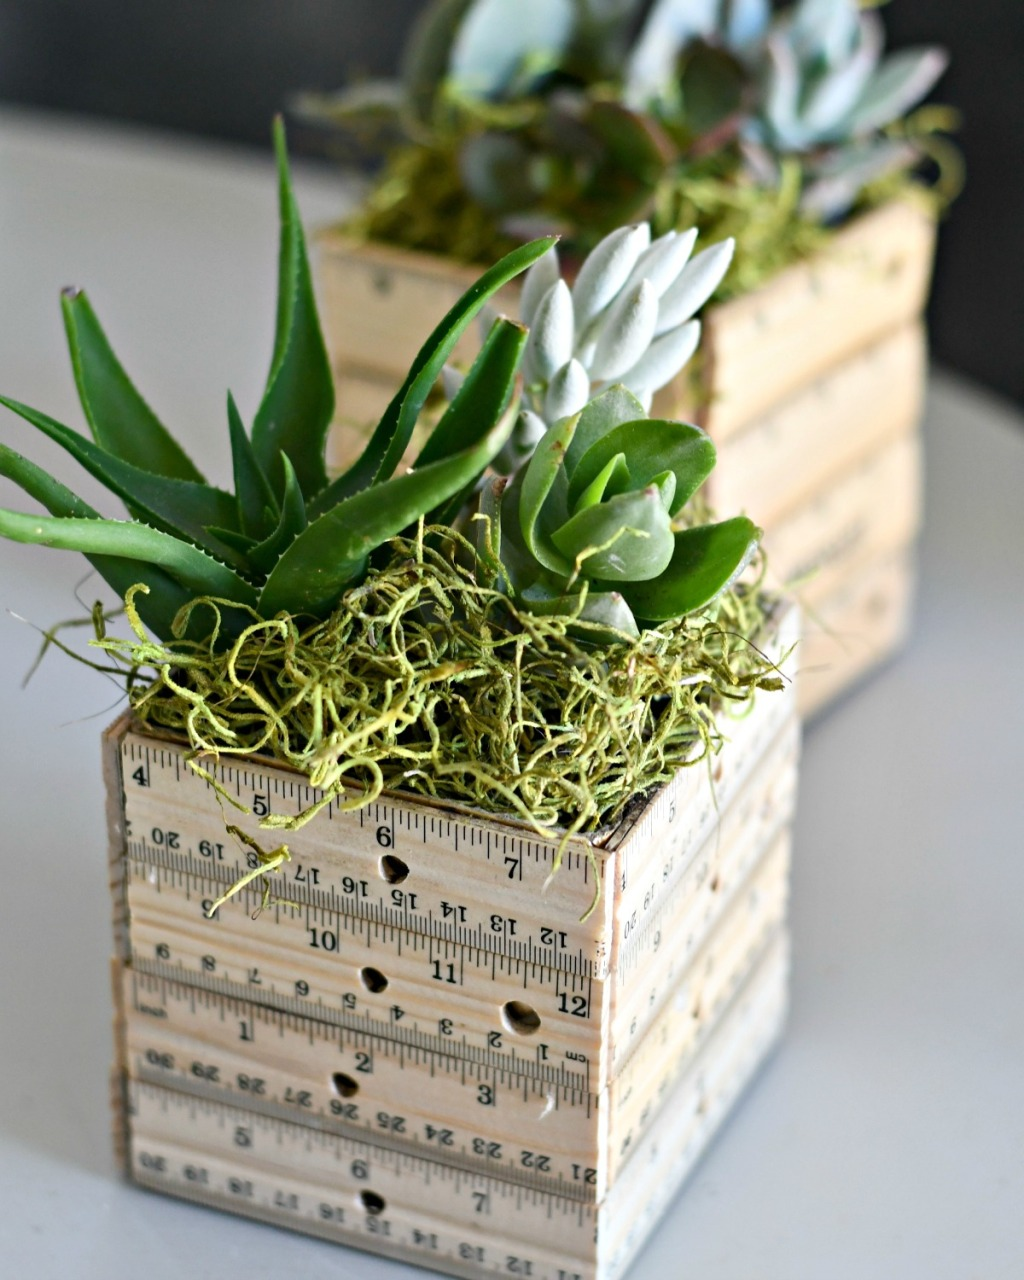 ruler planter with succulents and moss inside on a table